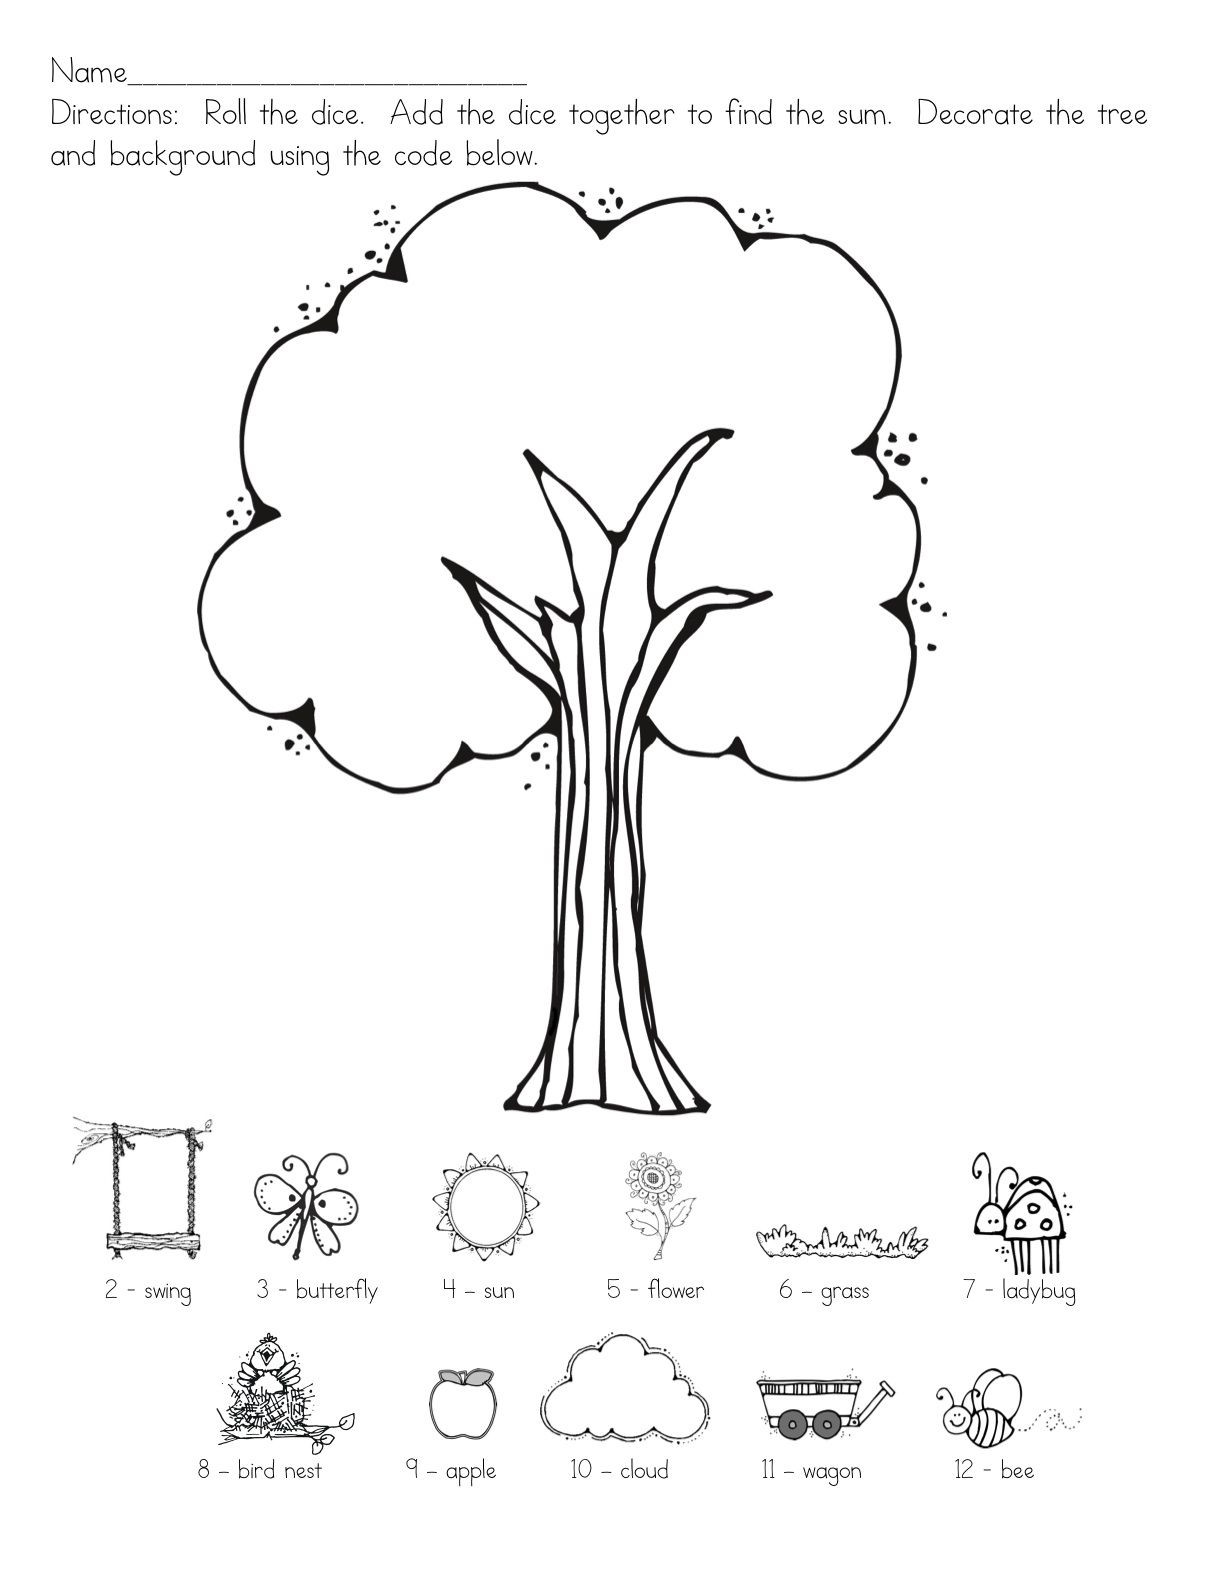 Following Directions Worksheet 3rd Grade Following Directions Worksheet for Preschoolers Printable